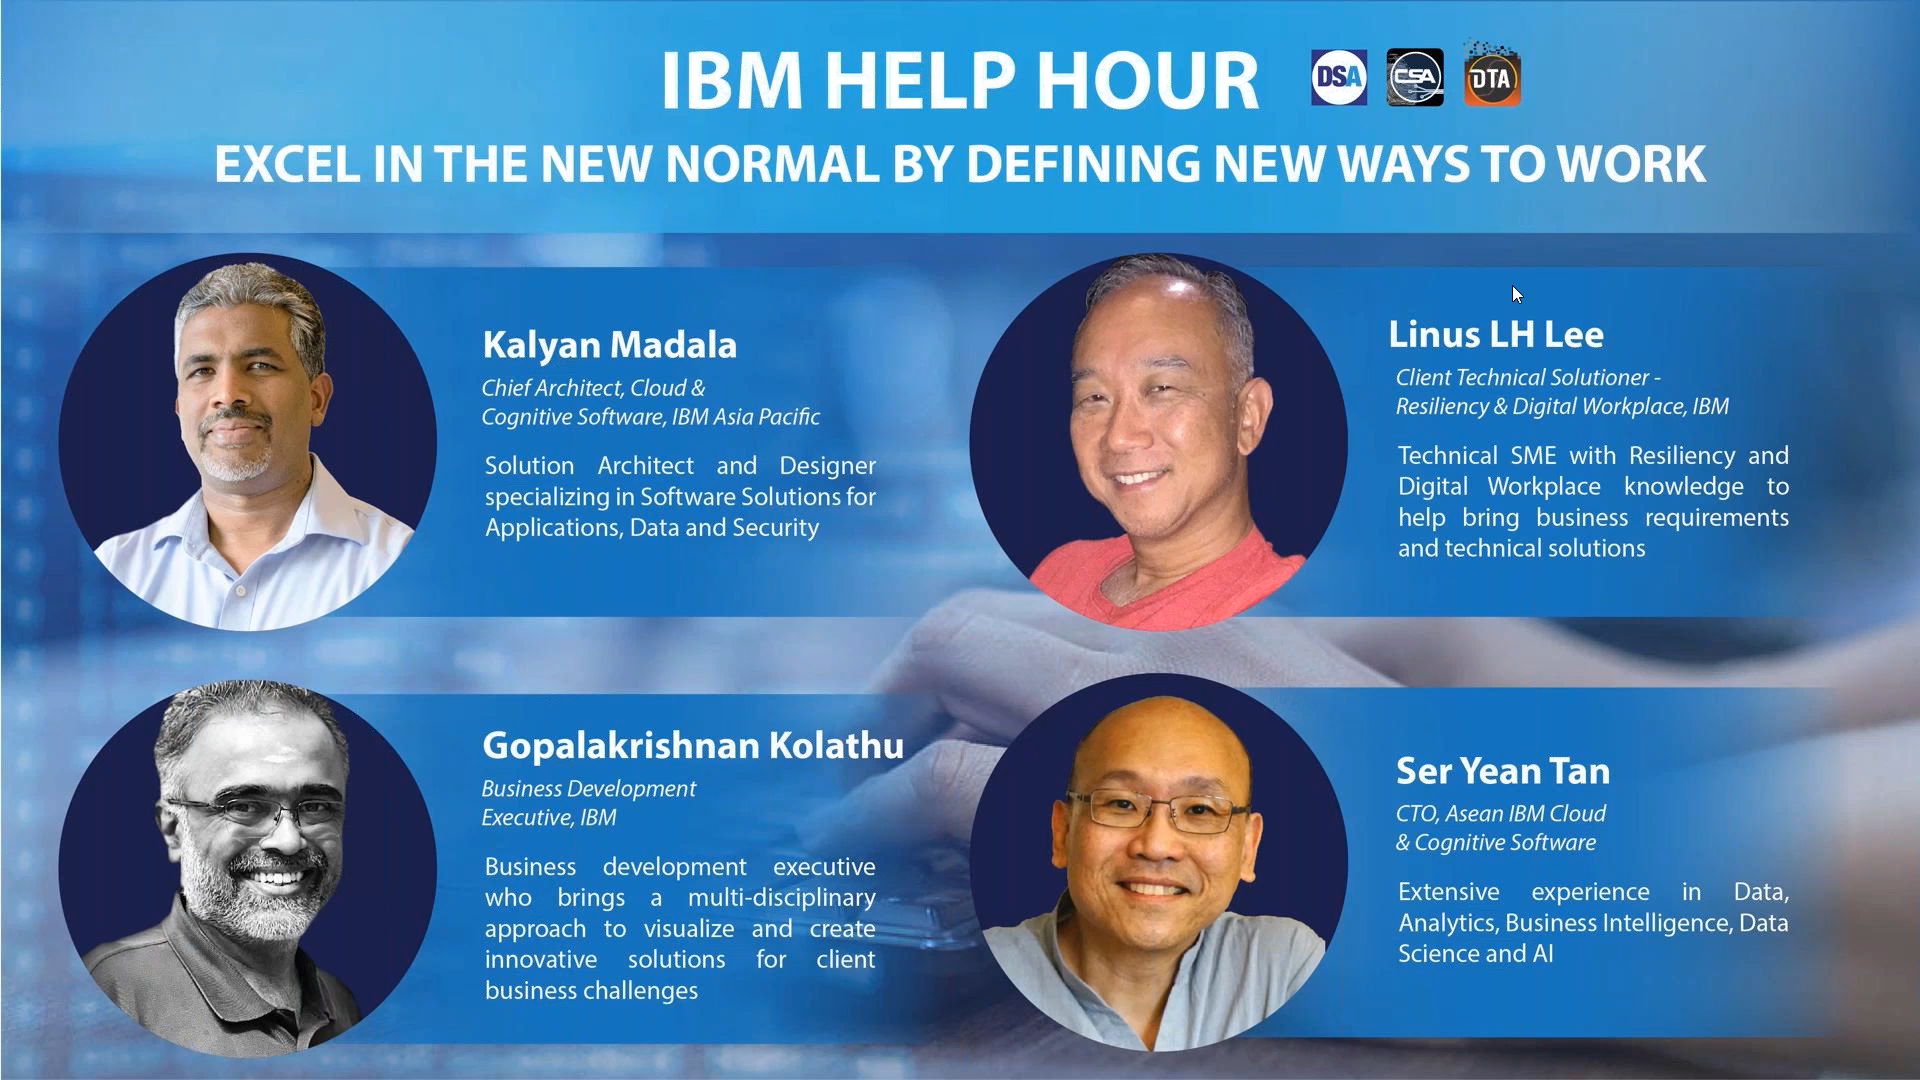 IBM Help Hour 2 - Excel in The New Normal by Defining New Ways to Work.